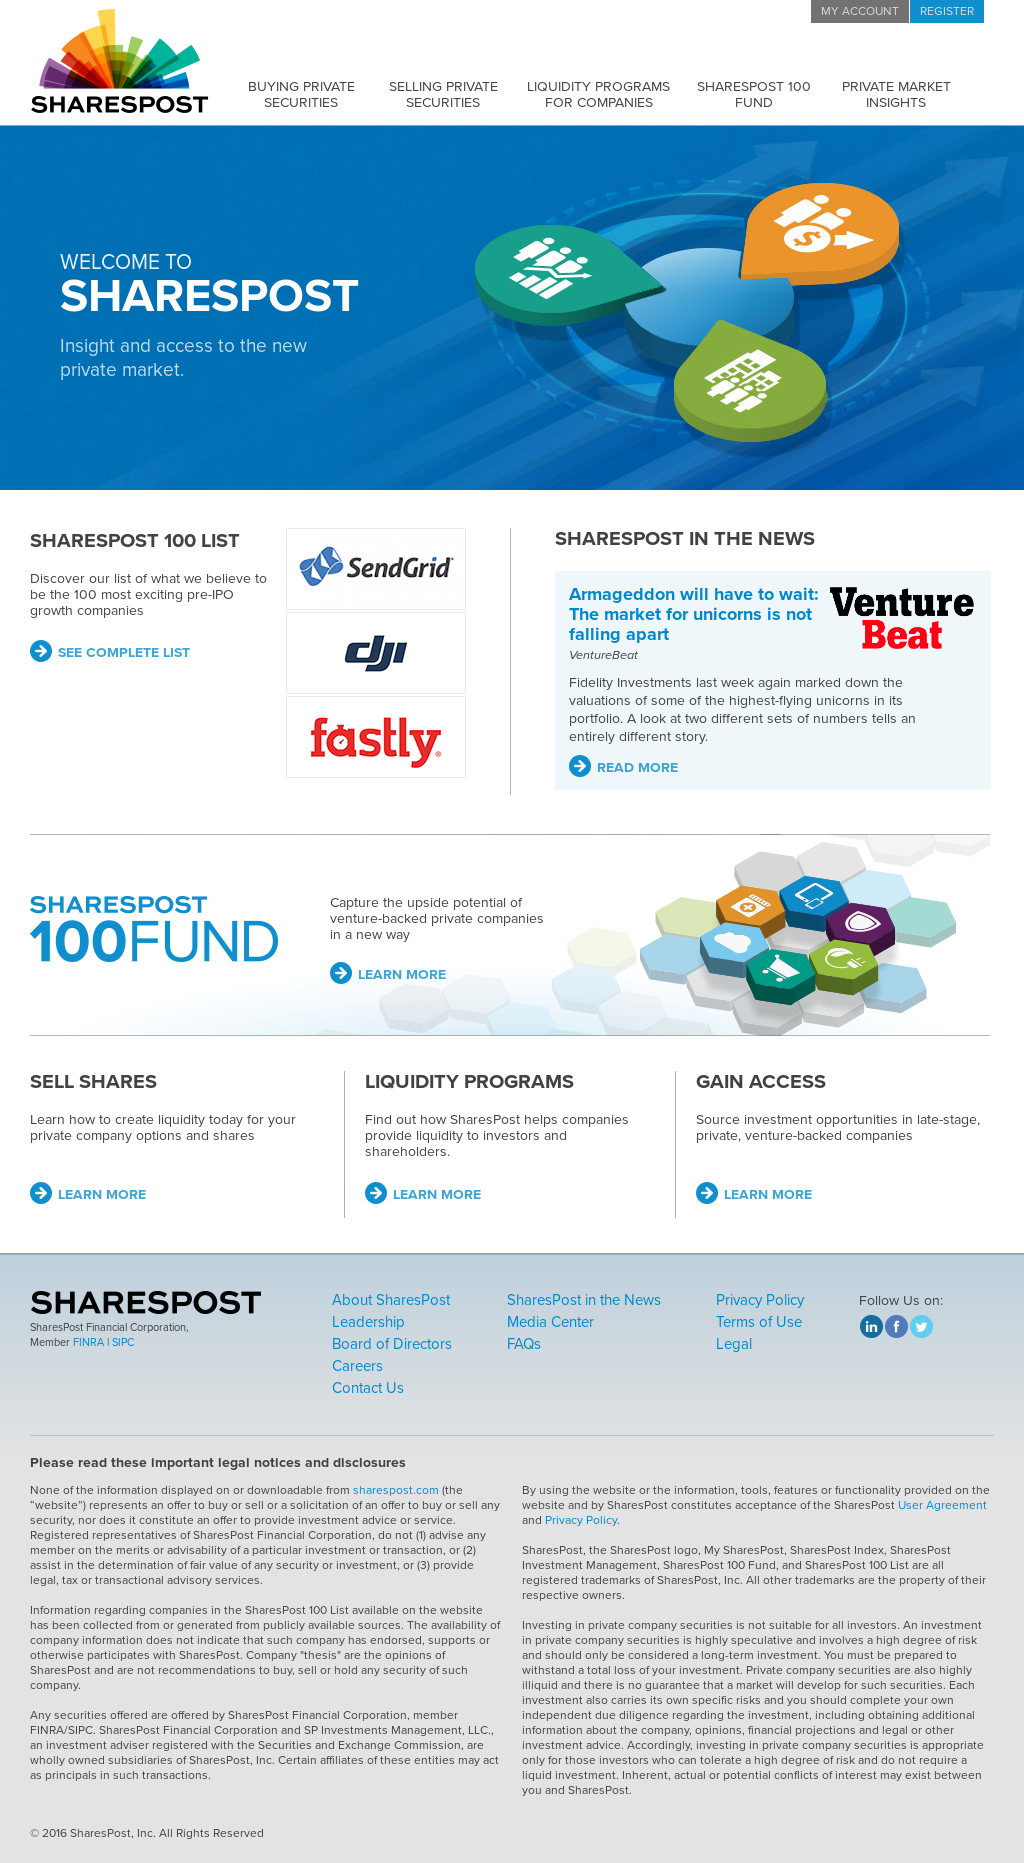 SharesPost Competitors, Revenue and Employees - Owler Company Profile